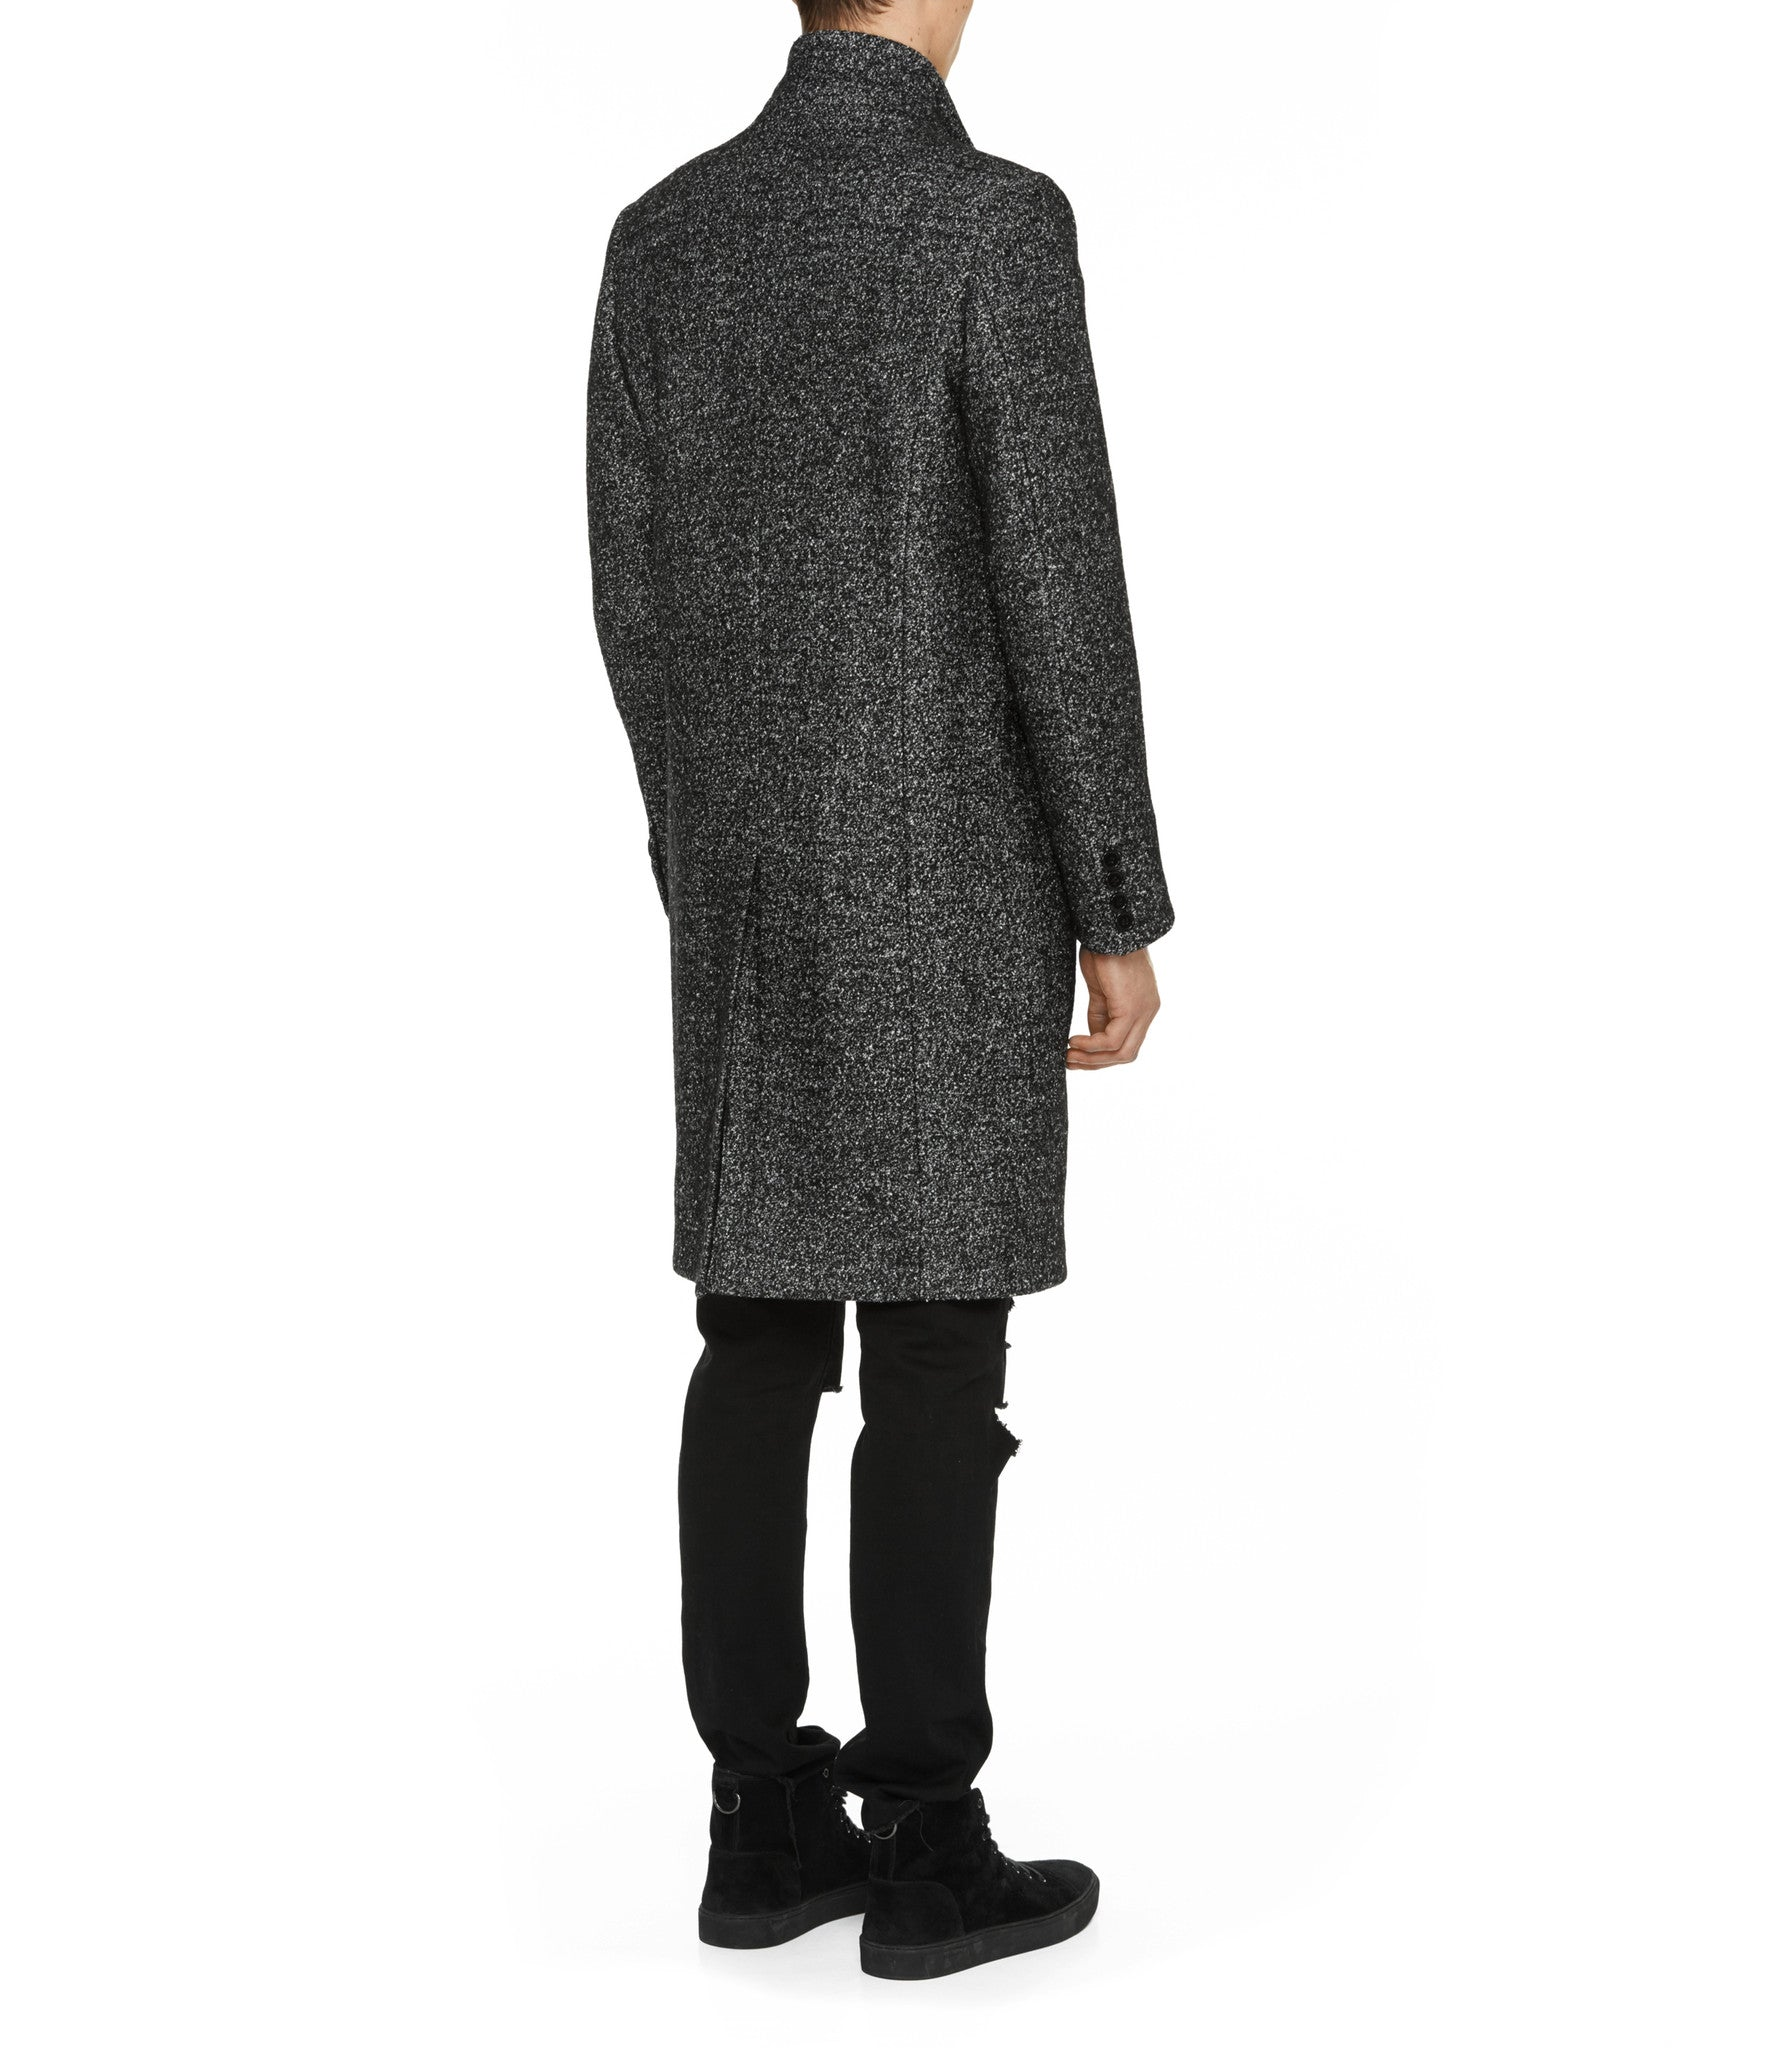 JK212 Mélange Wool Blend Overcoat - Black - underated london - underatedco - 7